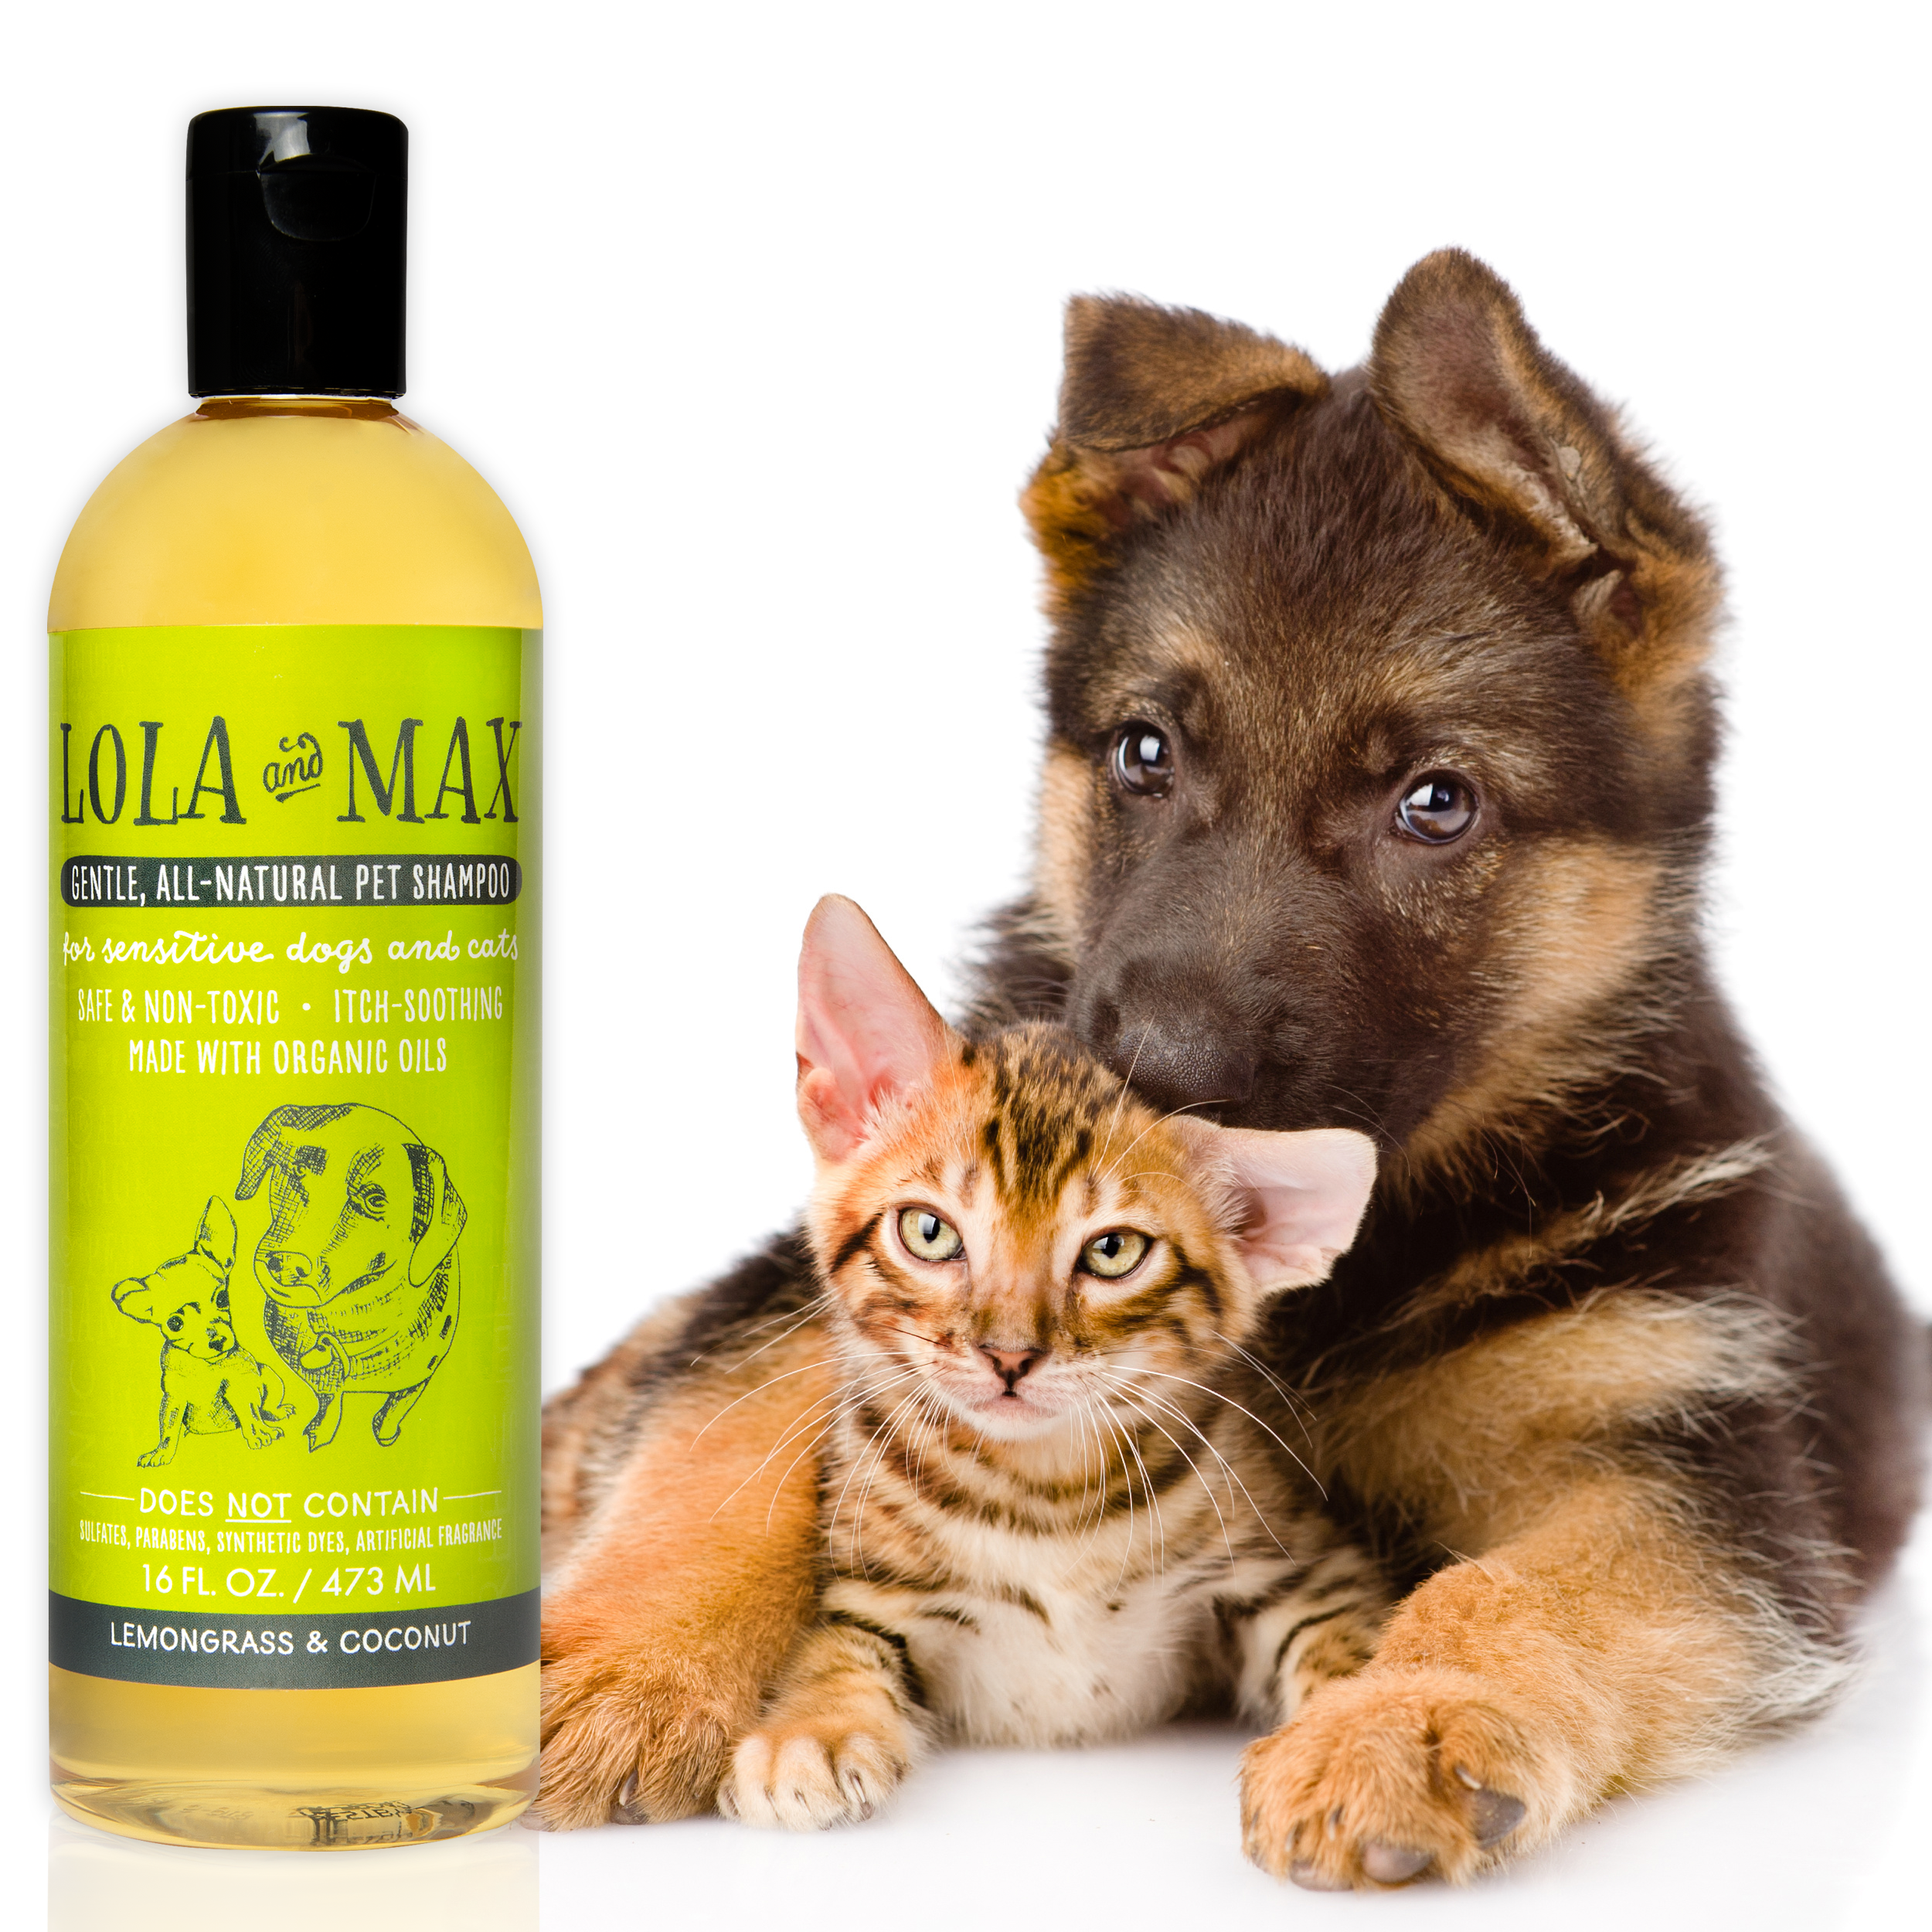 Lola And Max Organic All Natural Pet Shampoo Non Toxic Hypoallergenic Care For Itchy Sensitive Dogs And Cats Conditions And S Natural Pet Pet Shampoo Pets